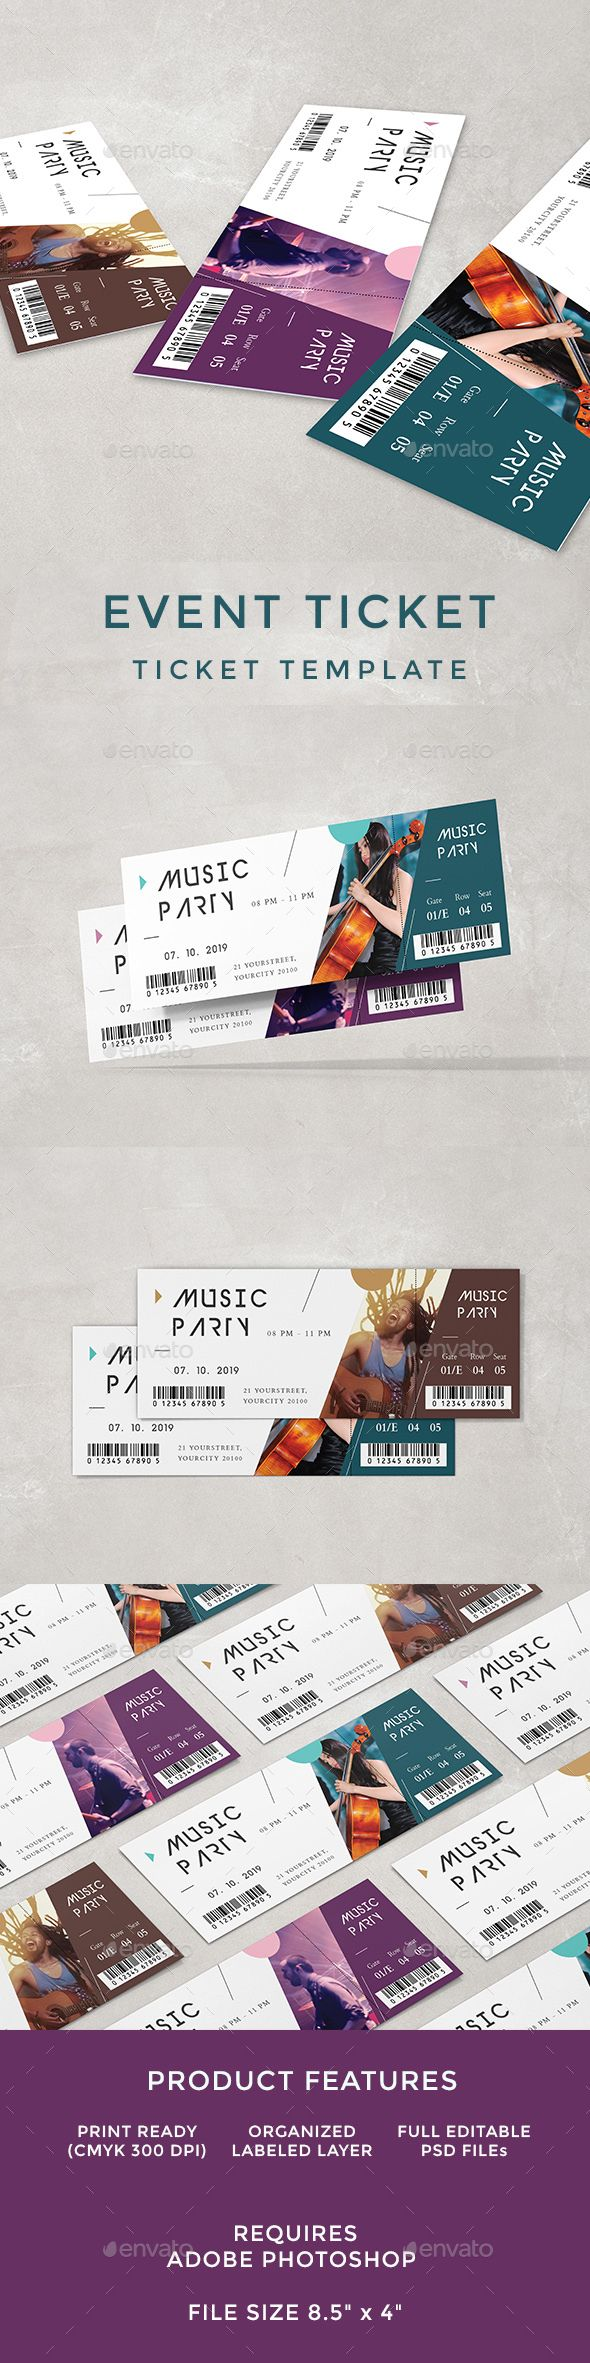 Concert Ticket Template Free Download Best Event Ticket  Event Ticket Print Templates And Template